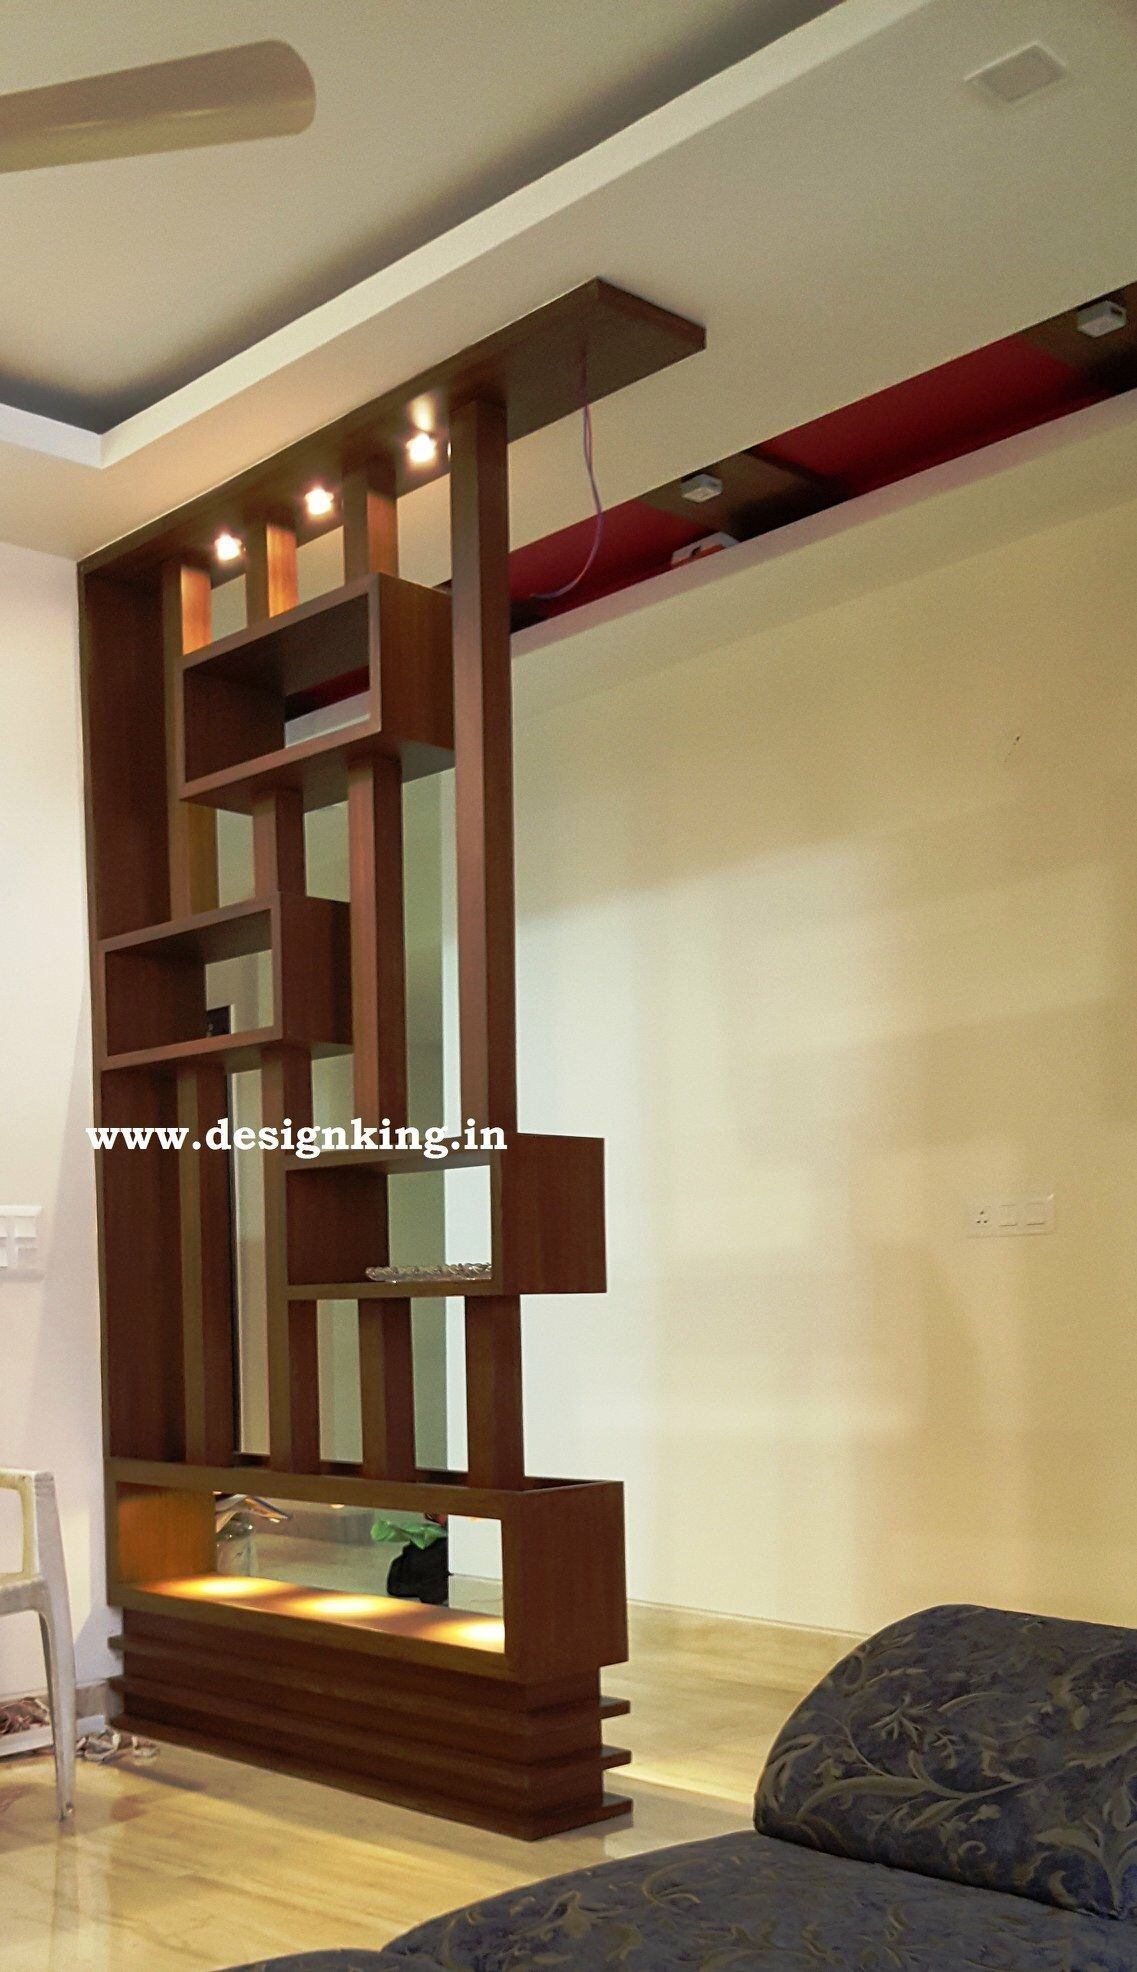 dining room and living room separation ideas on 35 divider ideas living room partition living room partition design room partition designs divider ideas living room partition